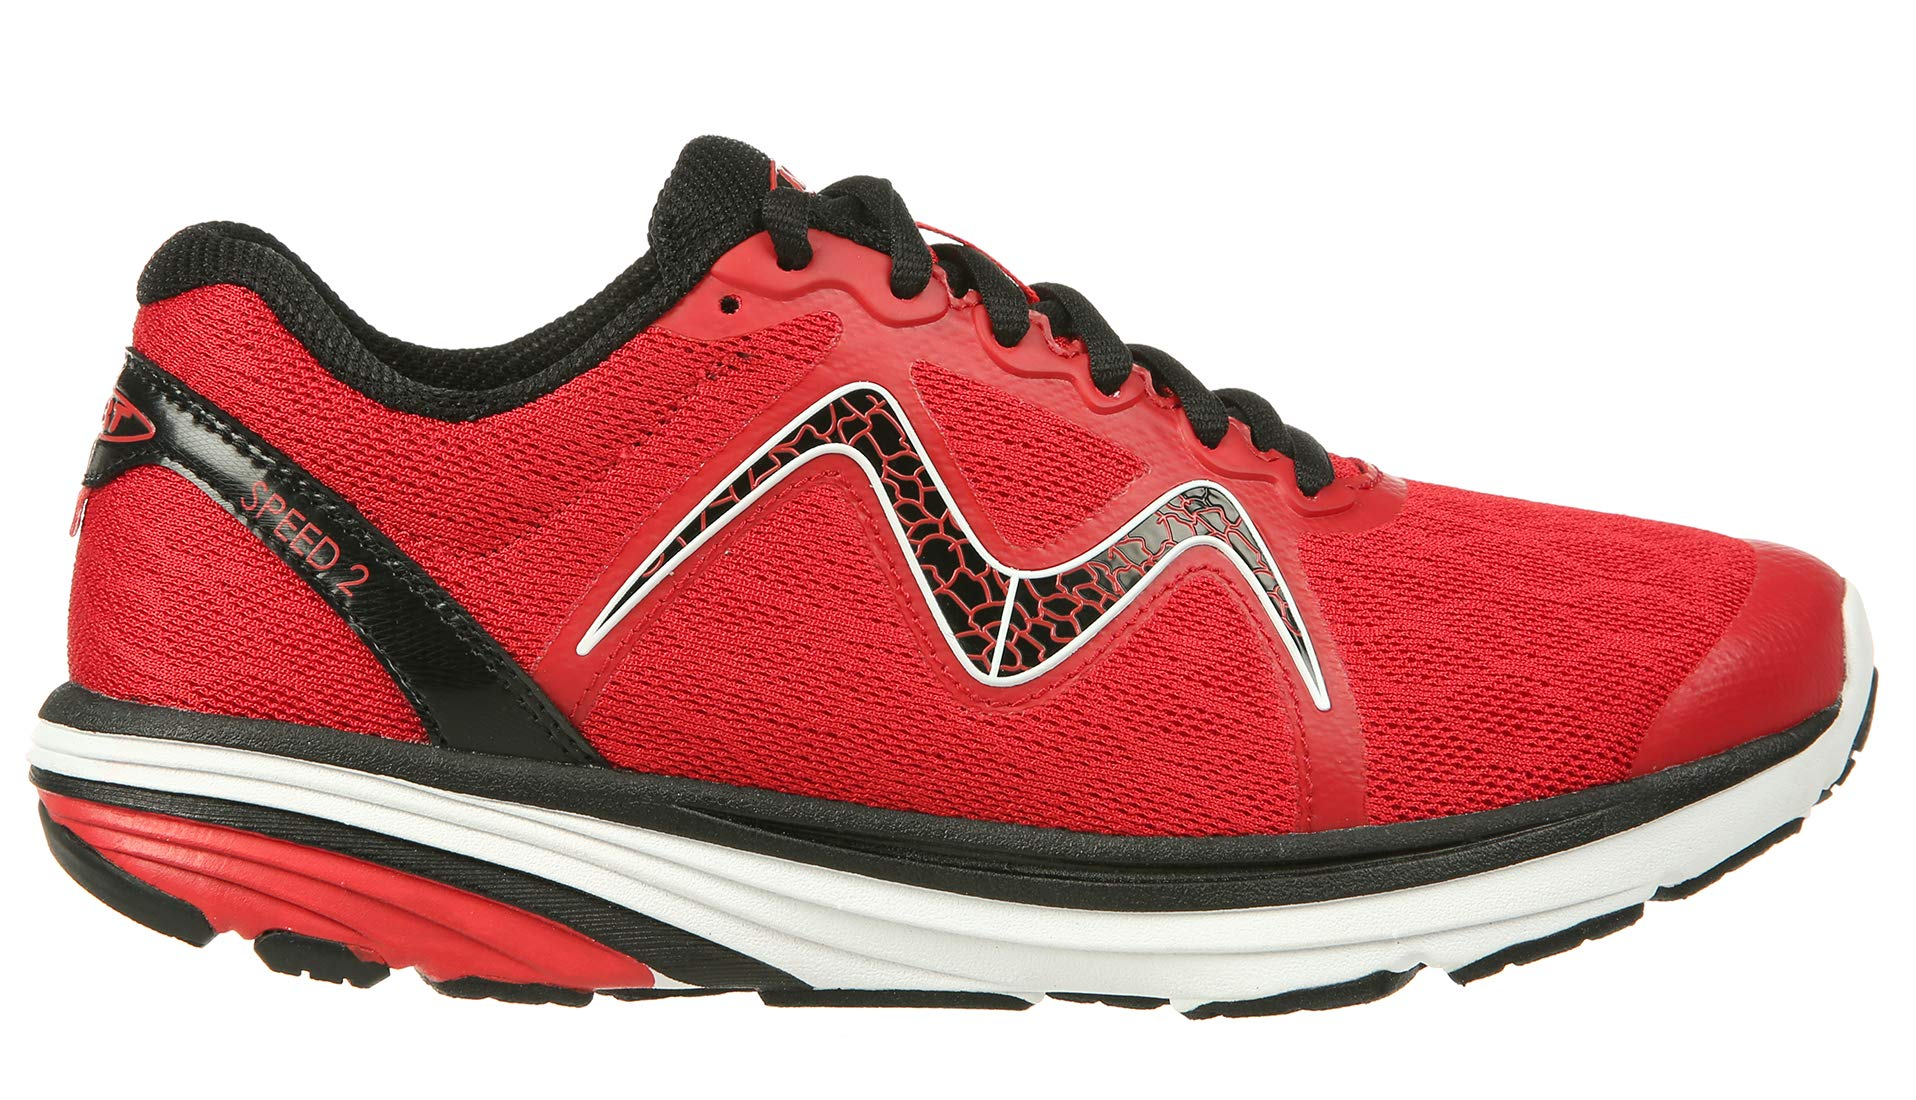 MBT Shoes Men's Speed 2 Athletic Shoe: Chili/Red 12 Medium (D) Lace by MBT